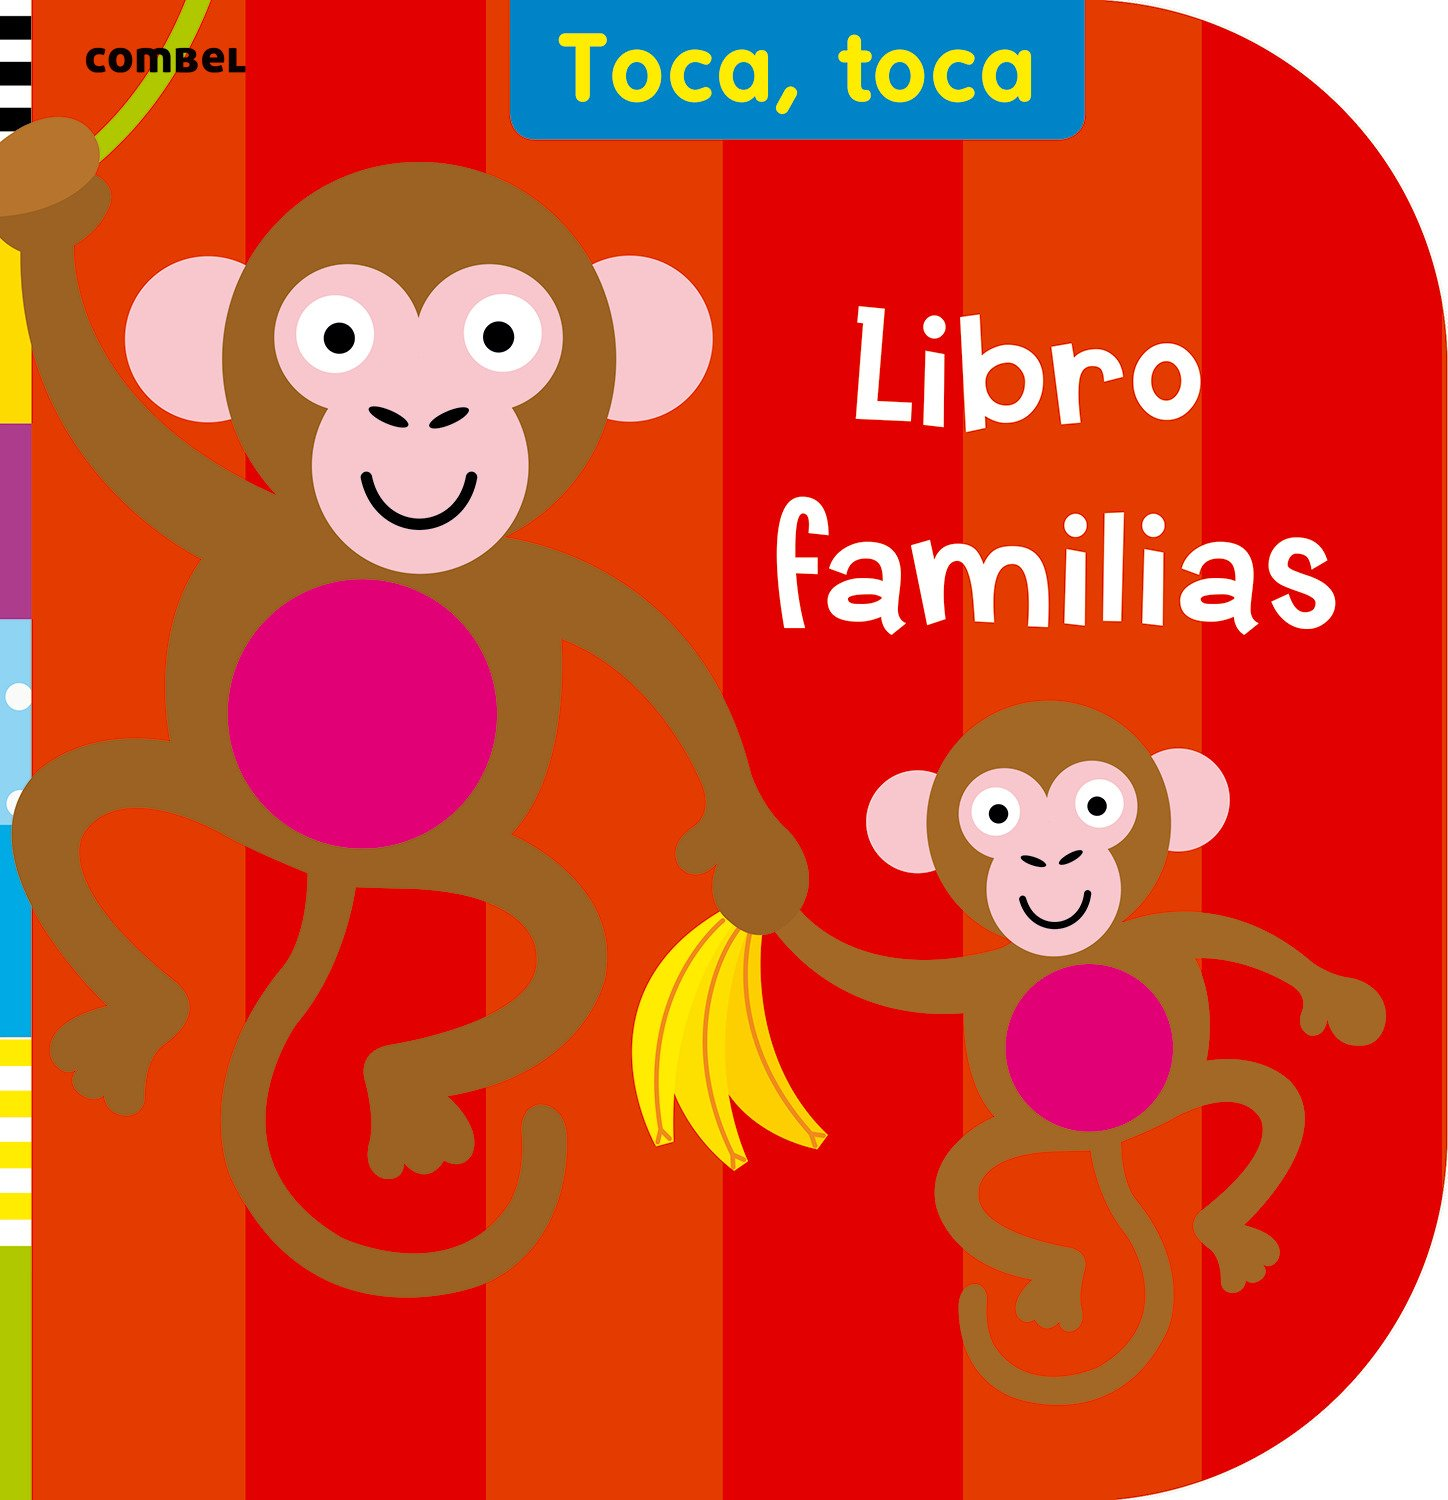 Libro familias (Toca toca series) (Spanish Edition): Ladybird: 9788498258738: Amazon.com: Books